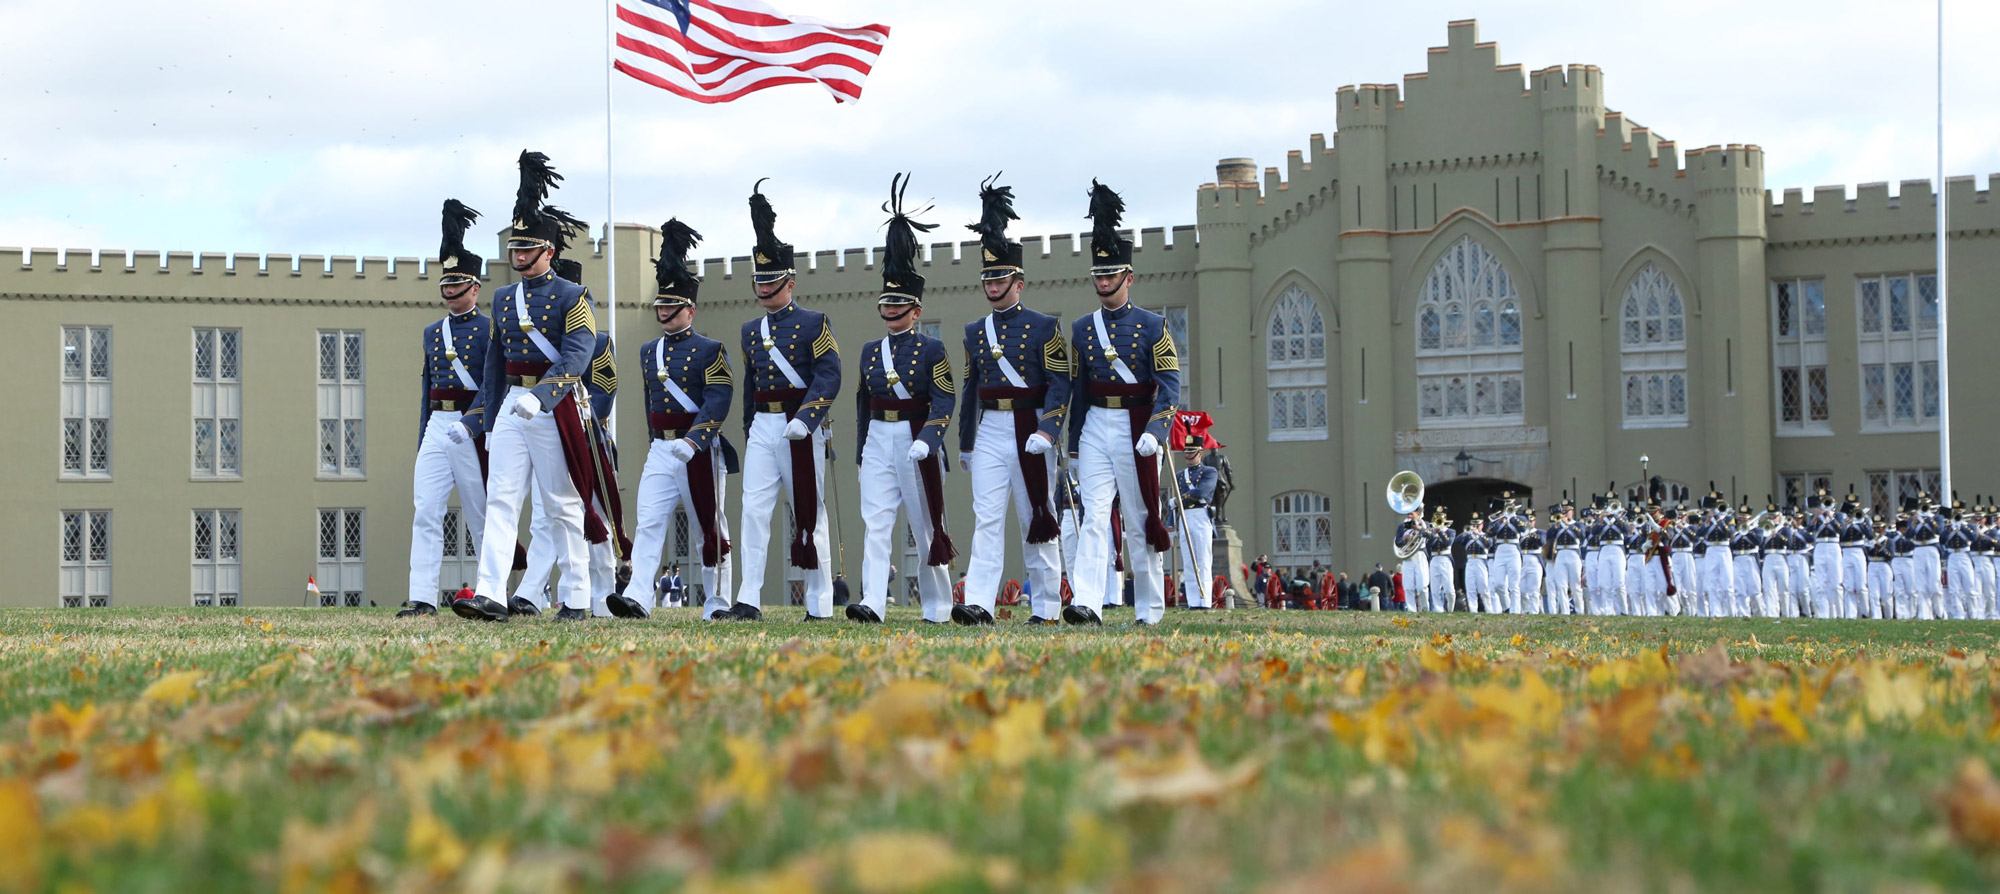 VMI soldiers marching with American flag